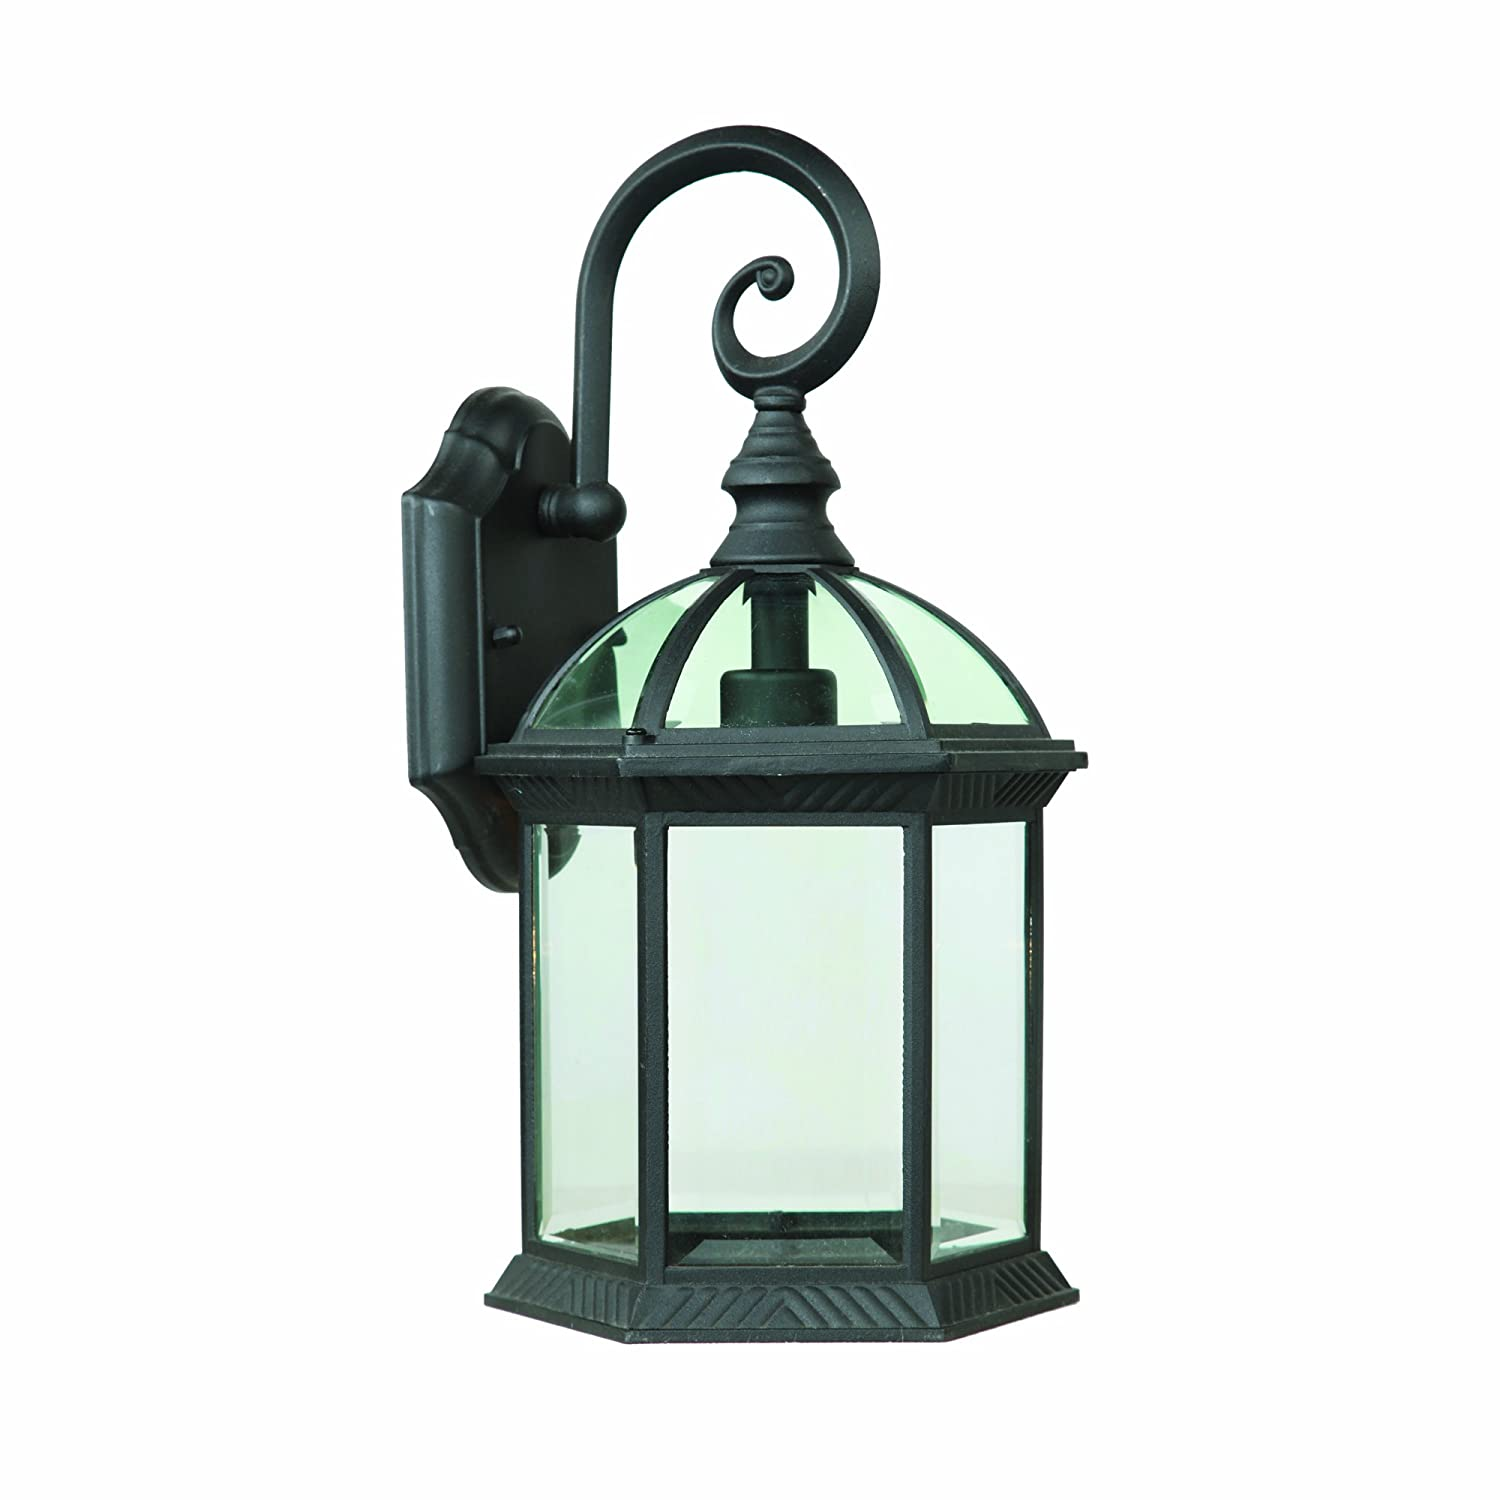 Yosemite Home Decor 5271BL 1 Light Exterior with Clear Beveled Glass ...